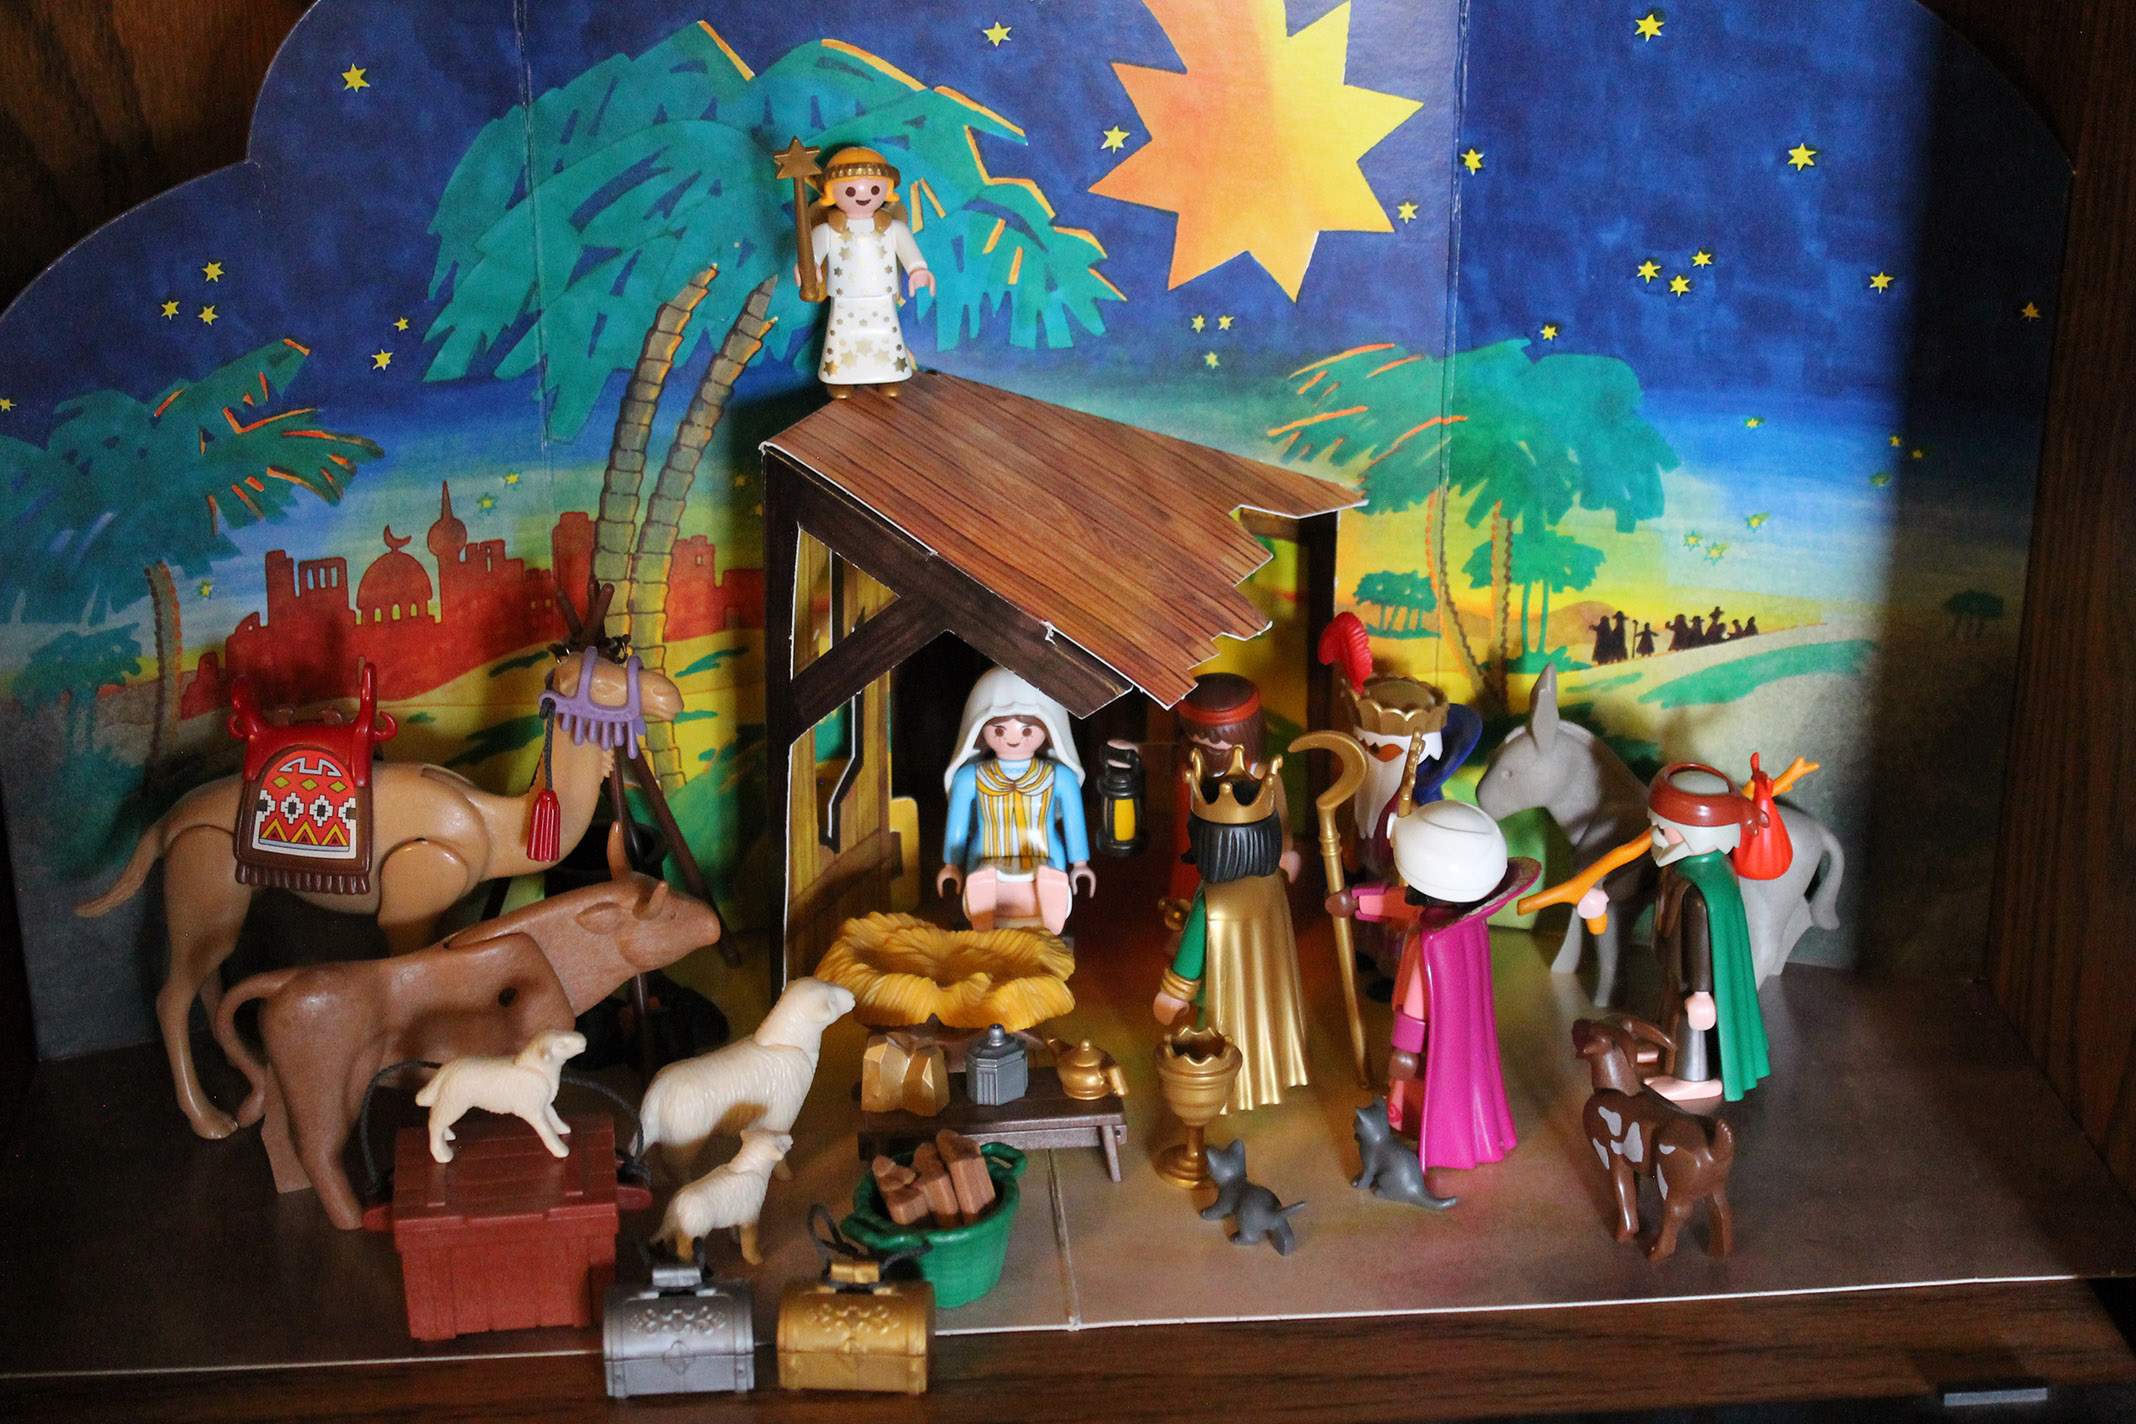 The wisemen reach the manger.